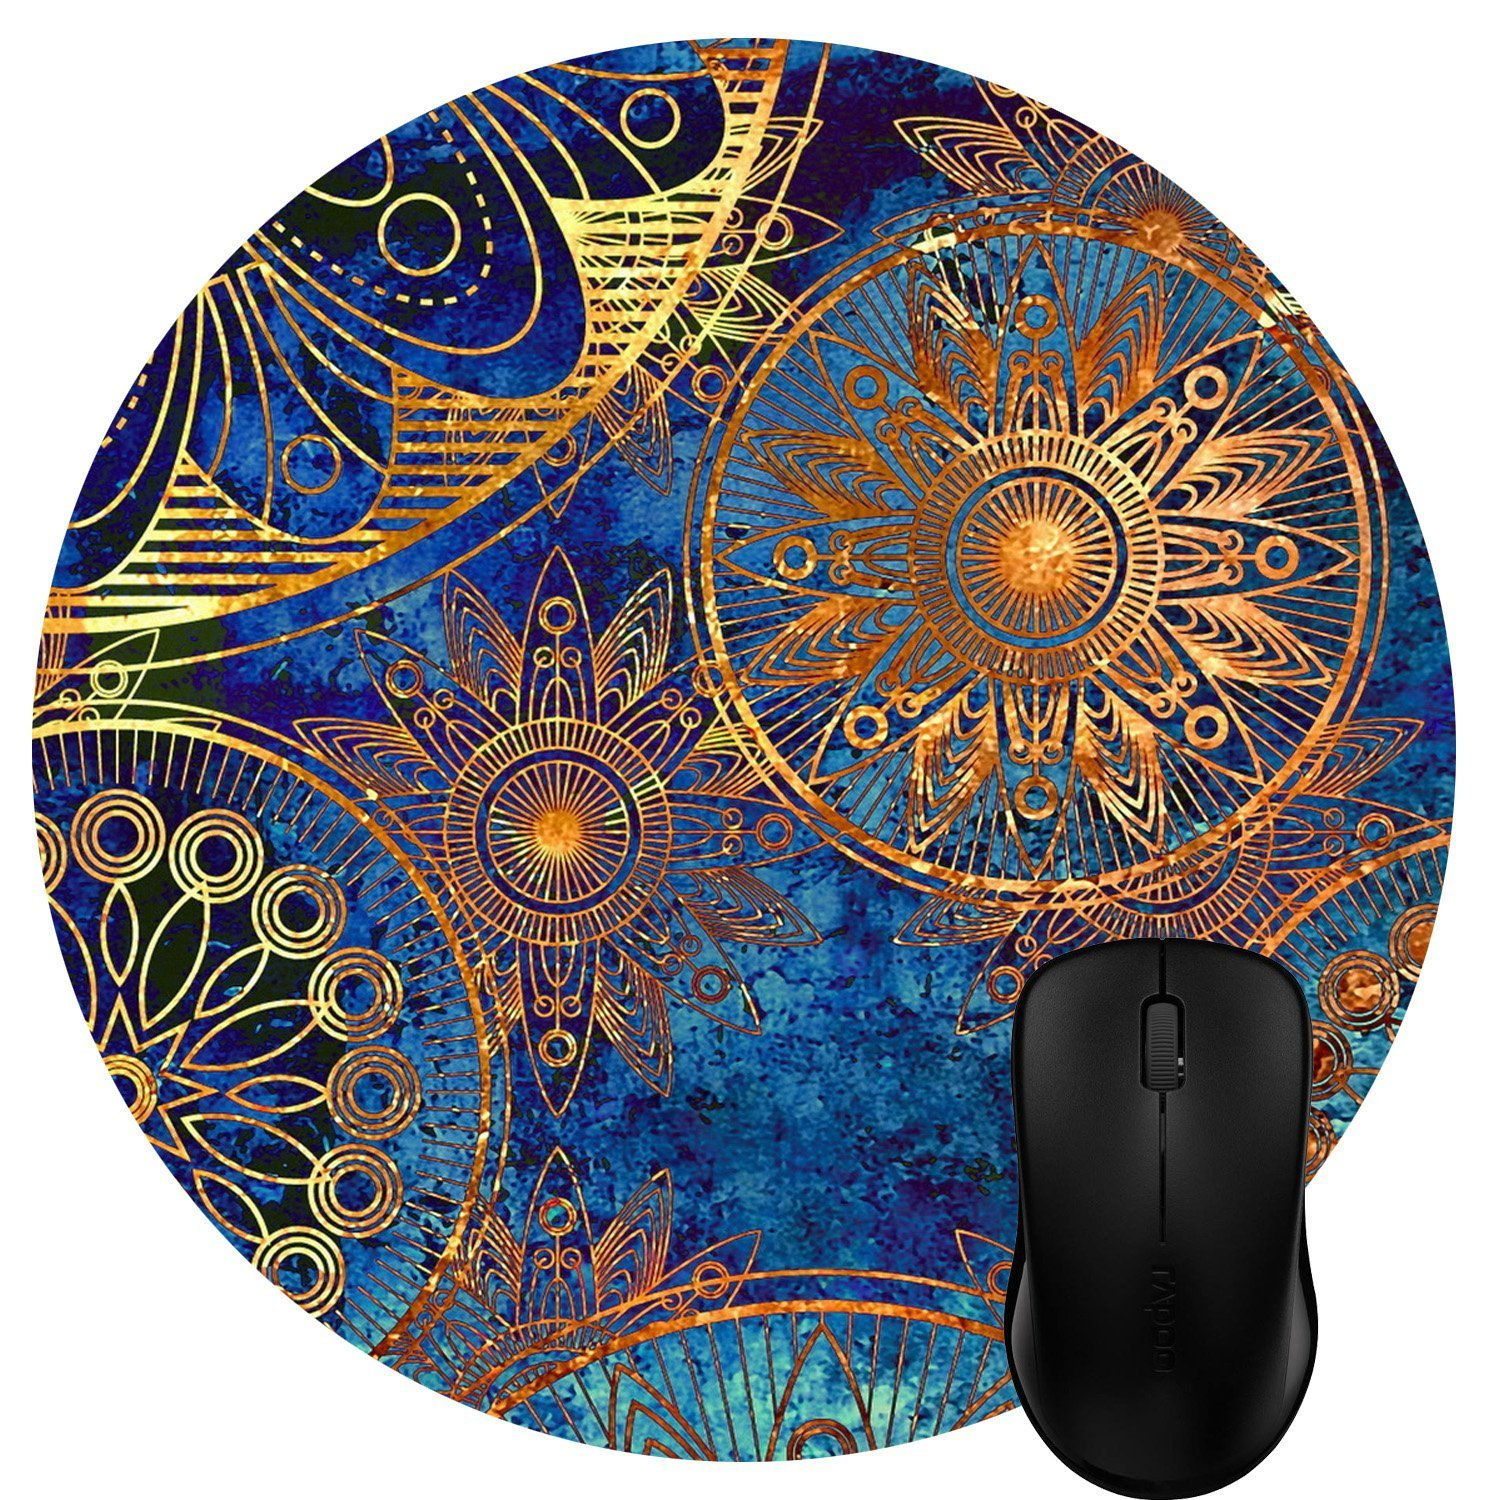 Vintage Hand Drawn Floral Wreath Art on Rustic Wood Circular Mouse Pads for Computers Laptop Wknoon Cute Round Mouse Pad Custom